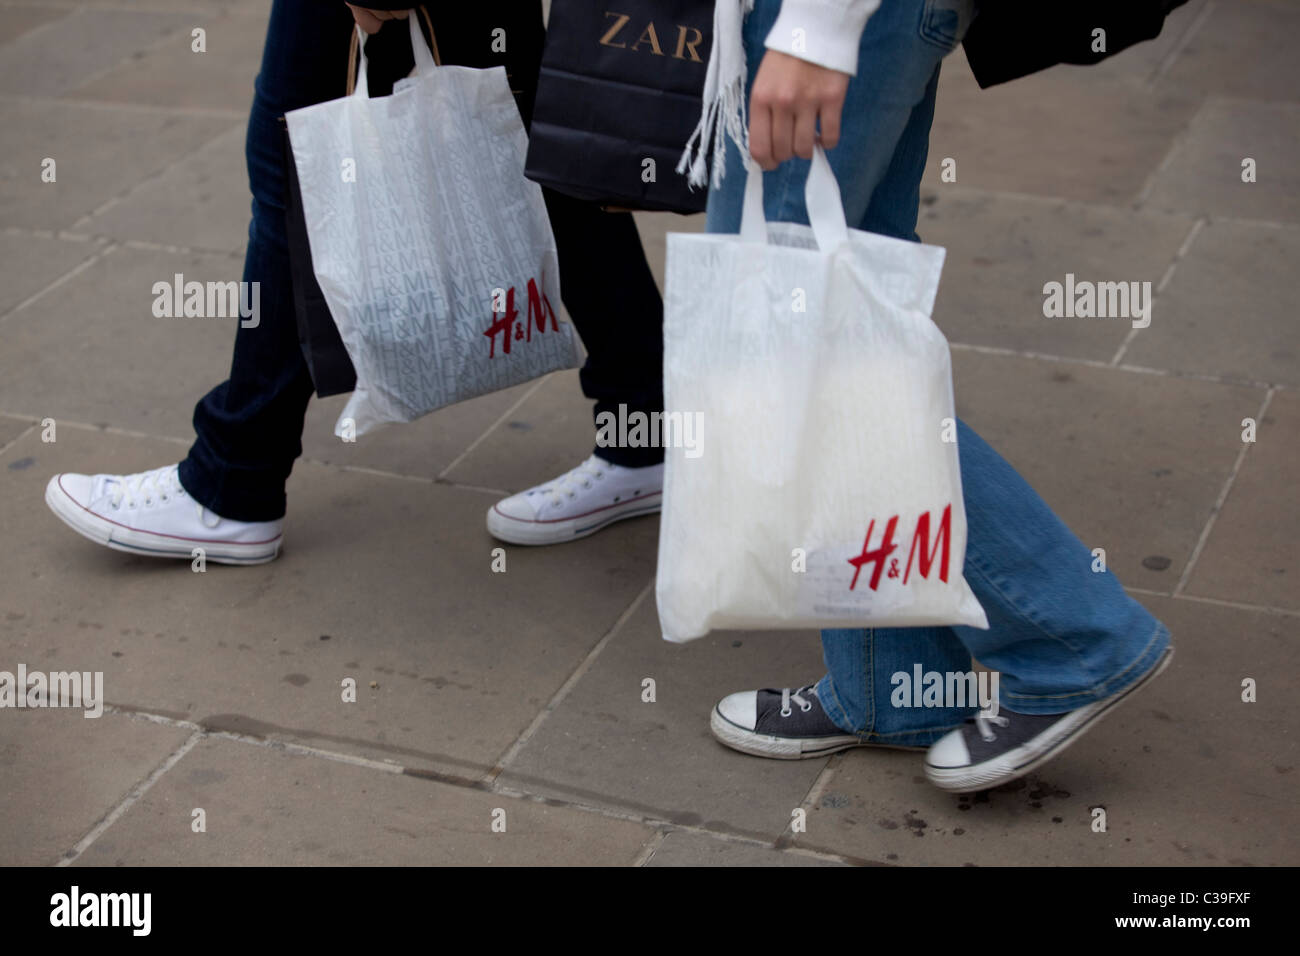 Two H&M customers leaving a store with their purchases. - Stock Image